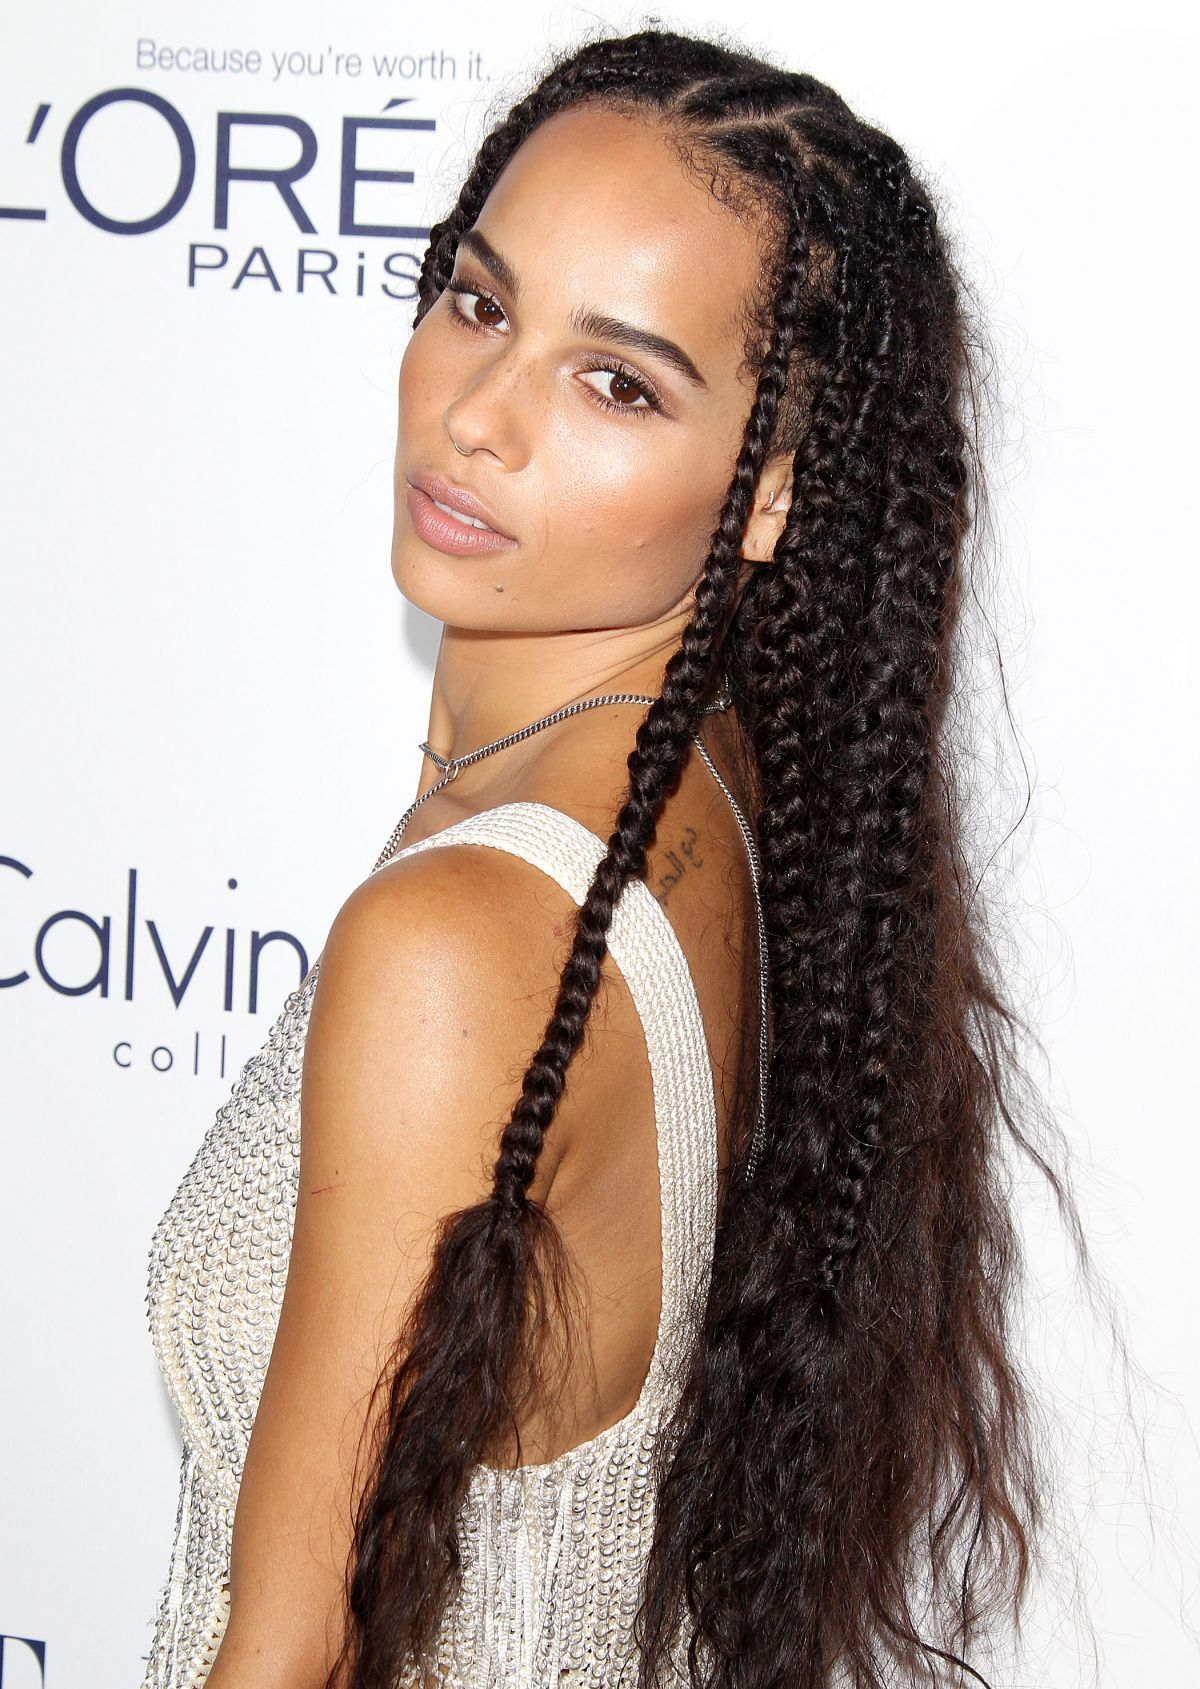 Coiffure Zoe Kravitz Zoe Kravitz With Braids At The Elle Women In Hollywood